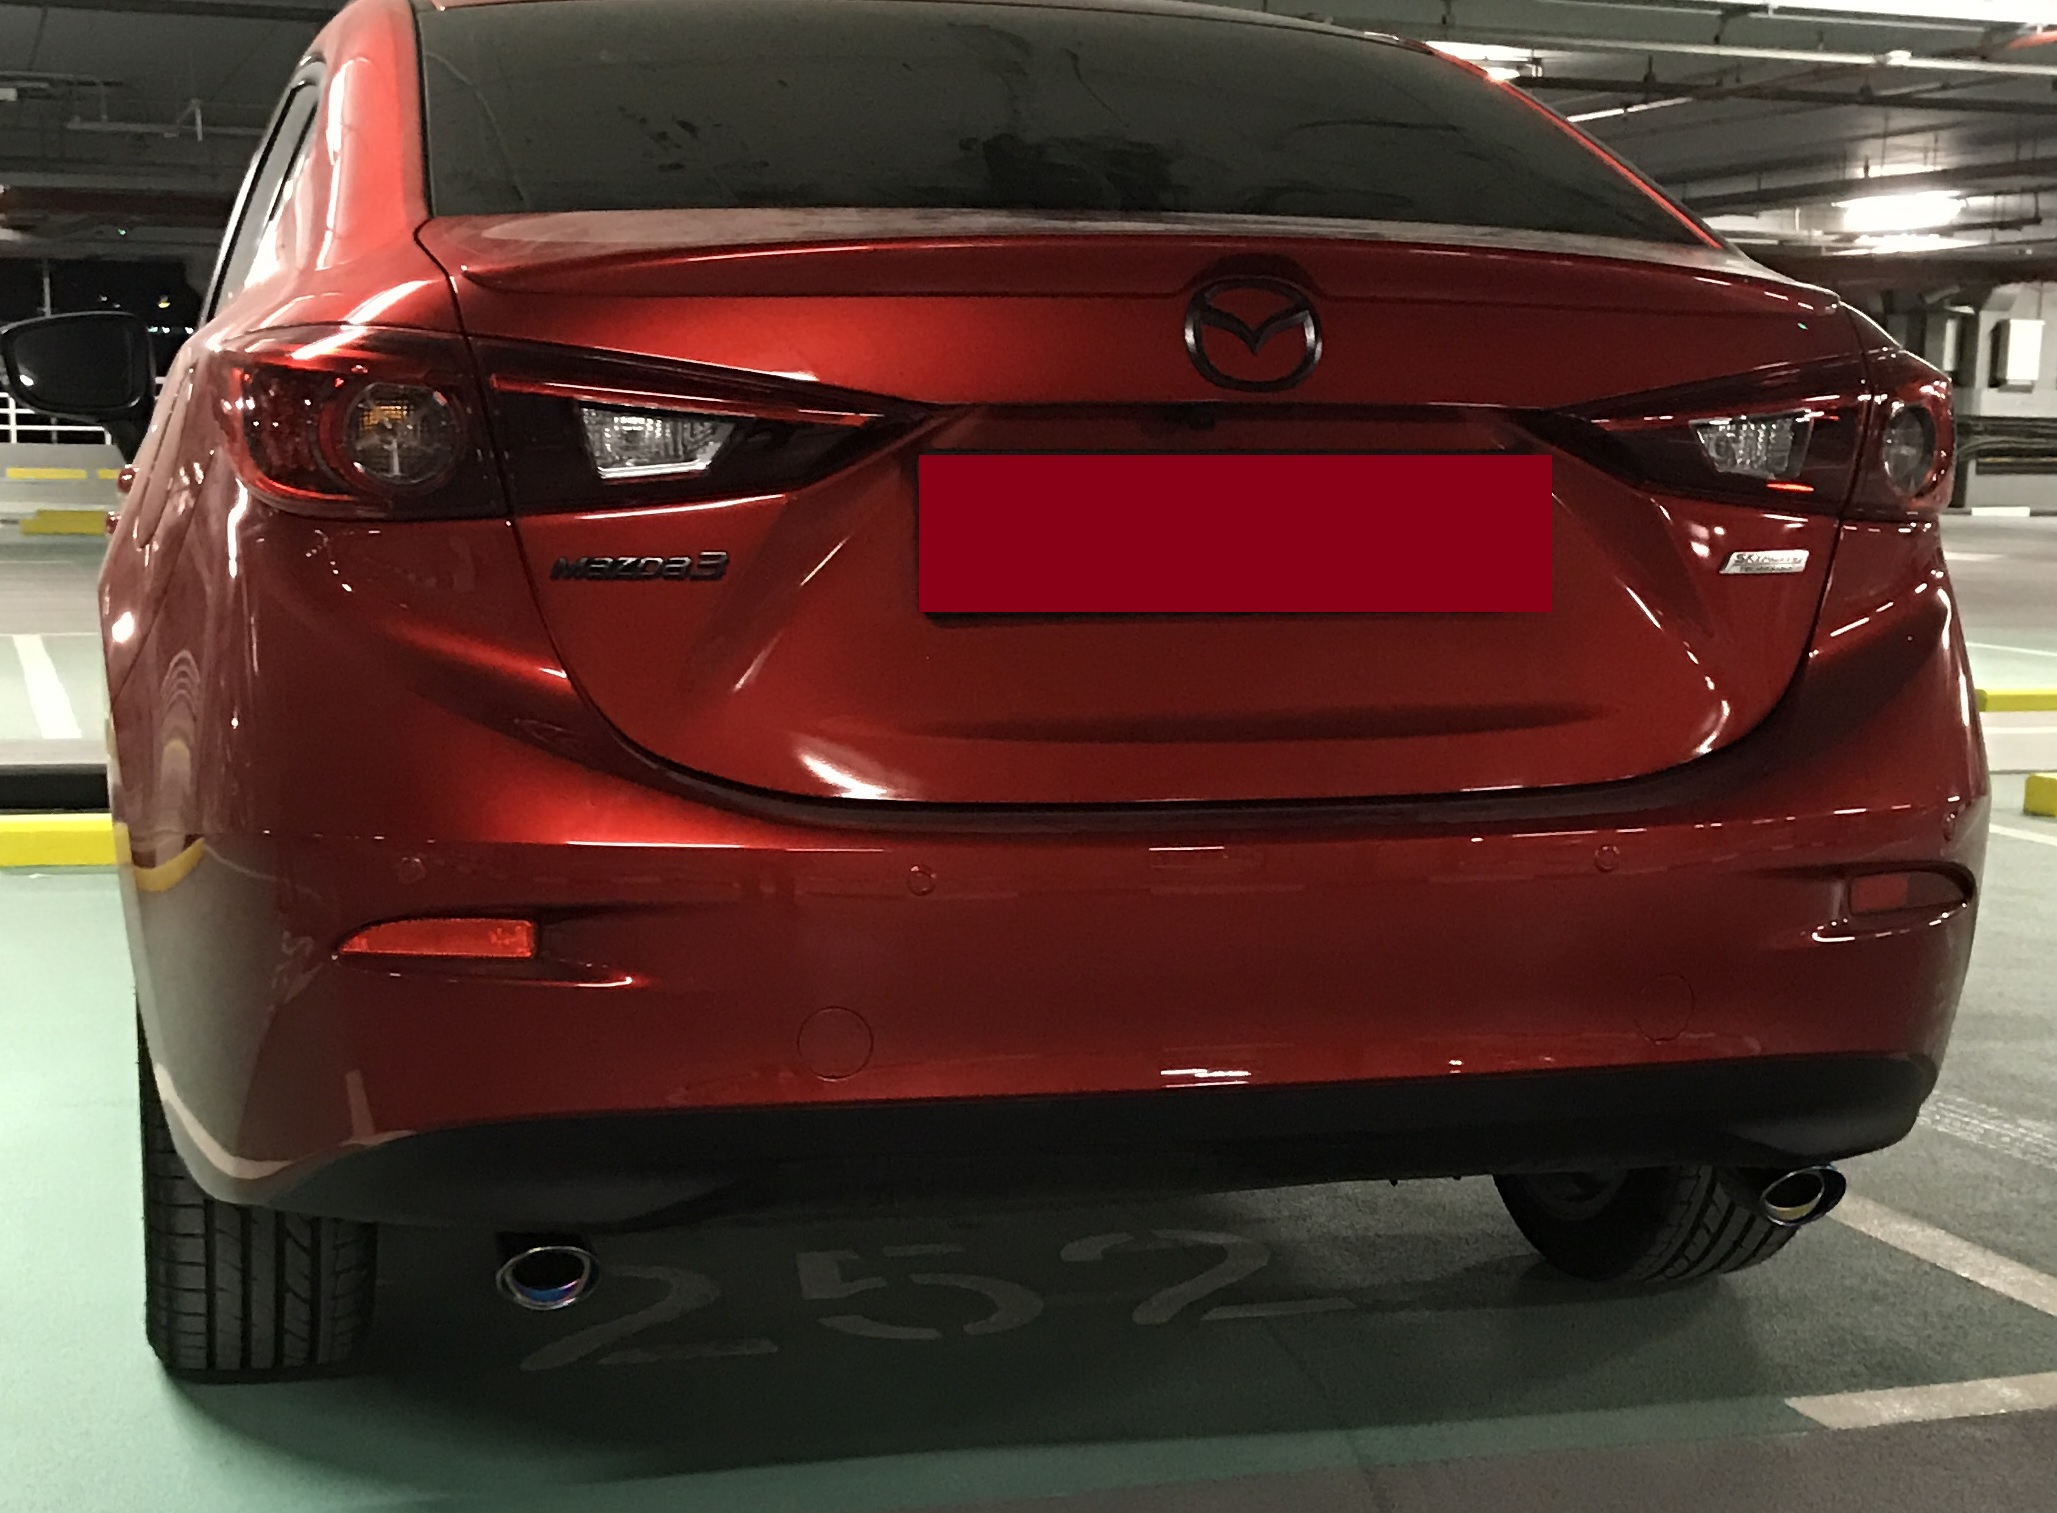 sedan l cars with alex courtesy review mazda first exterior dykes exhaust video of about drive picture truth the